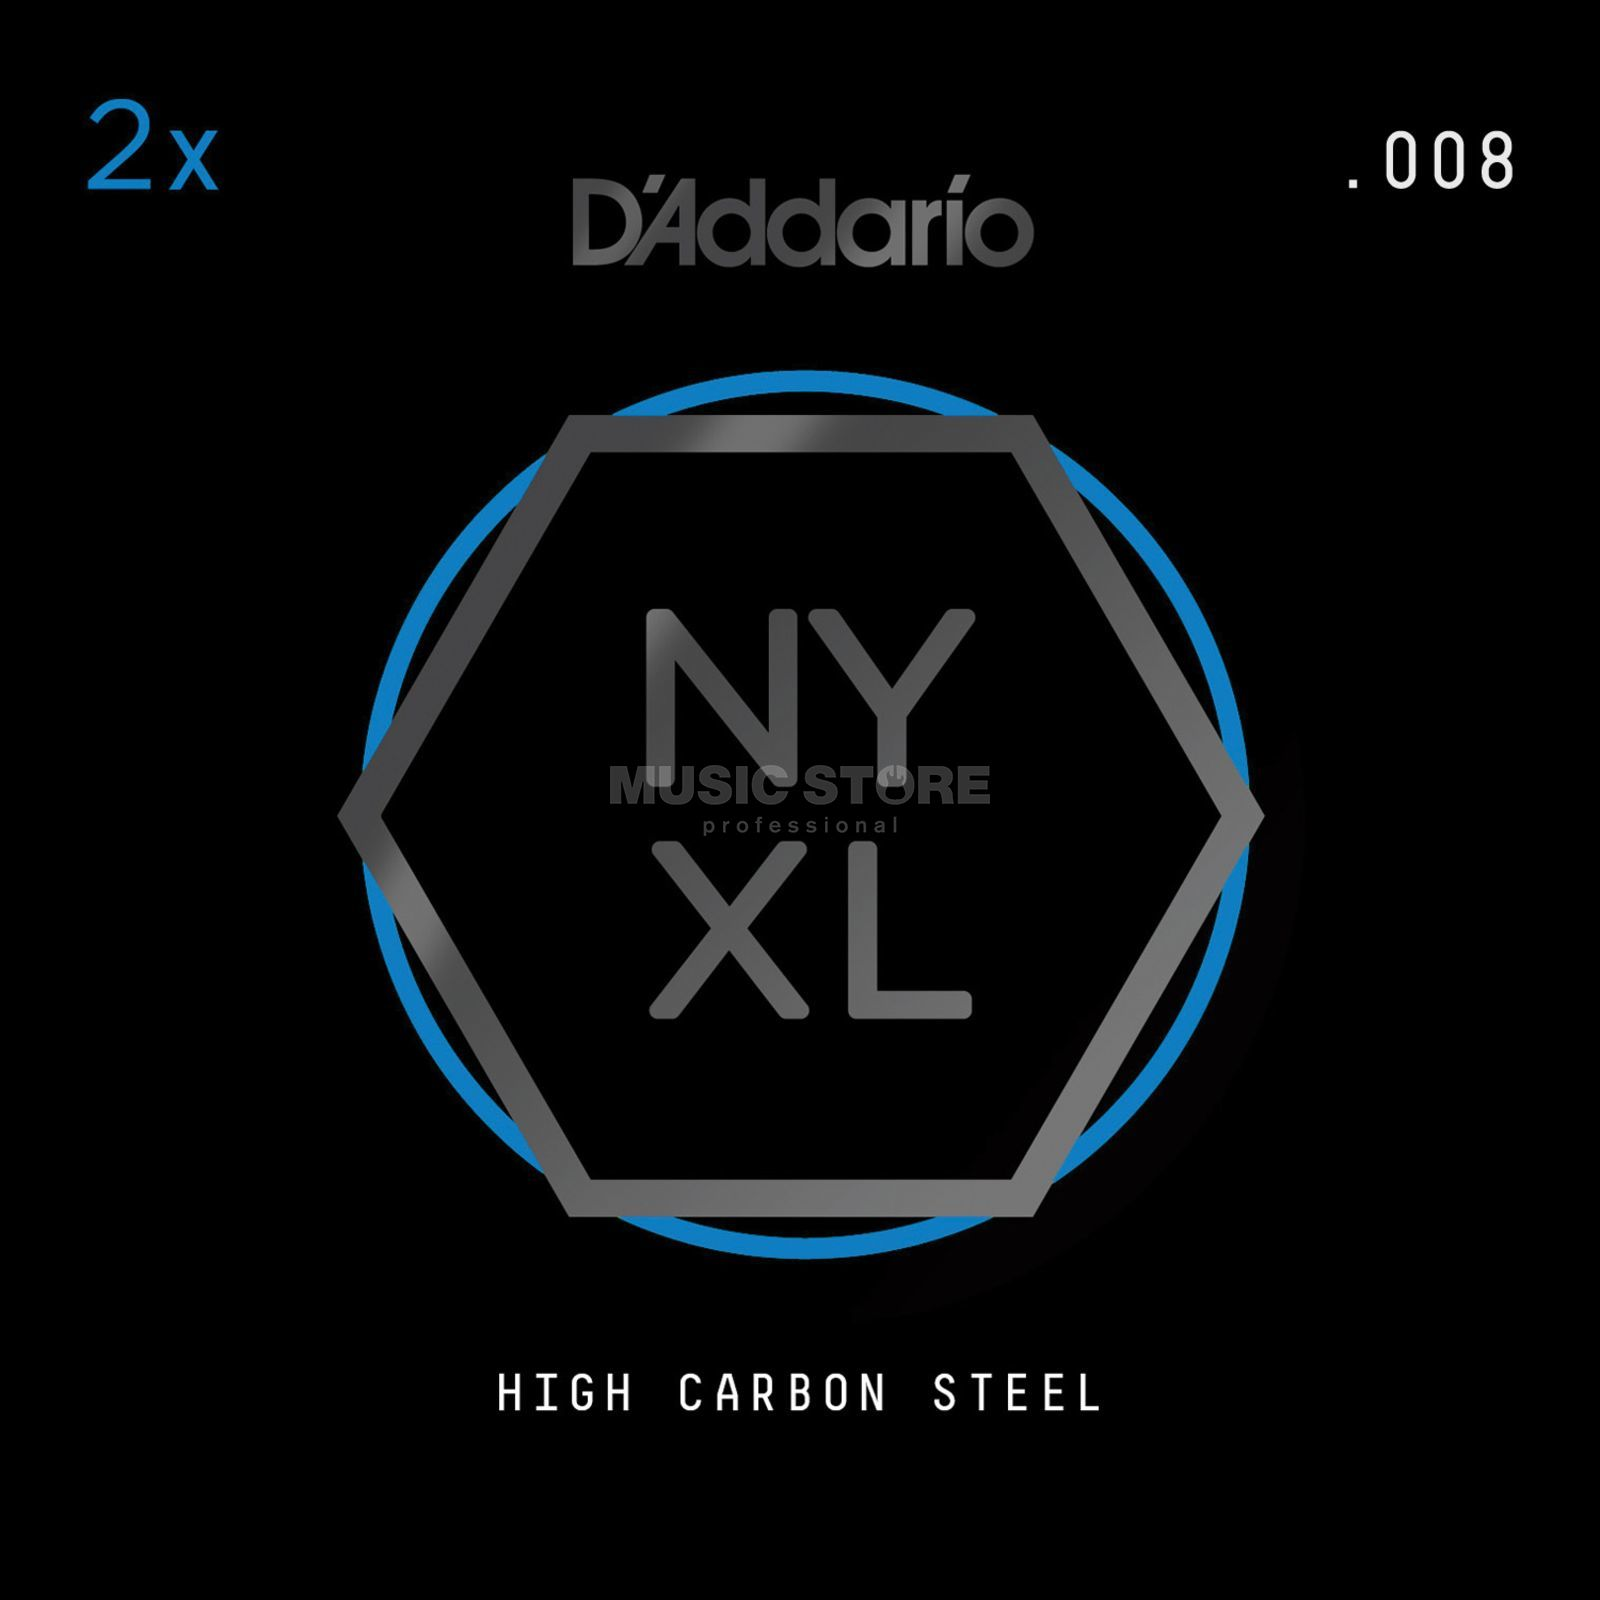 D'Addario NYPL008 Plain Single String 2-Pack - High Carbon Steel Imagem do produto